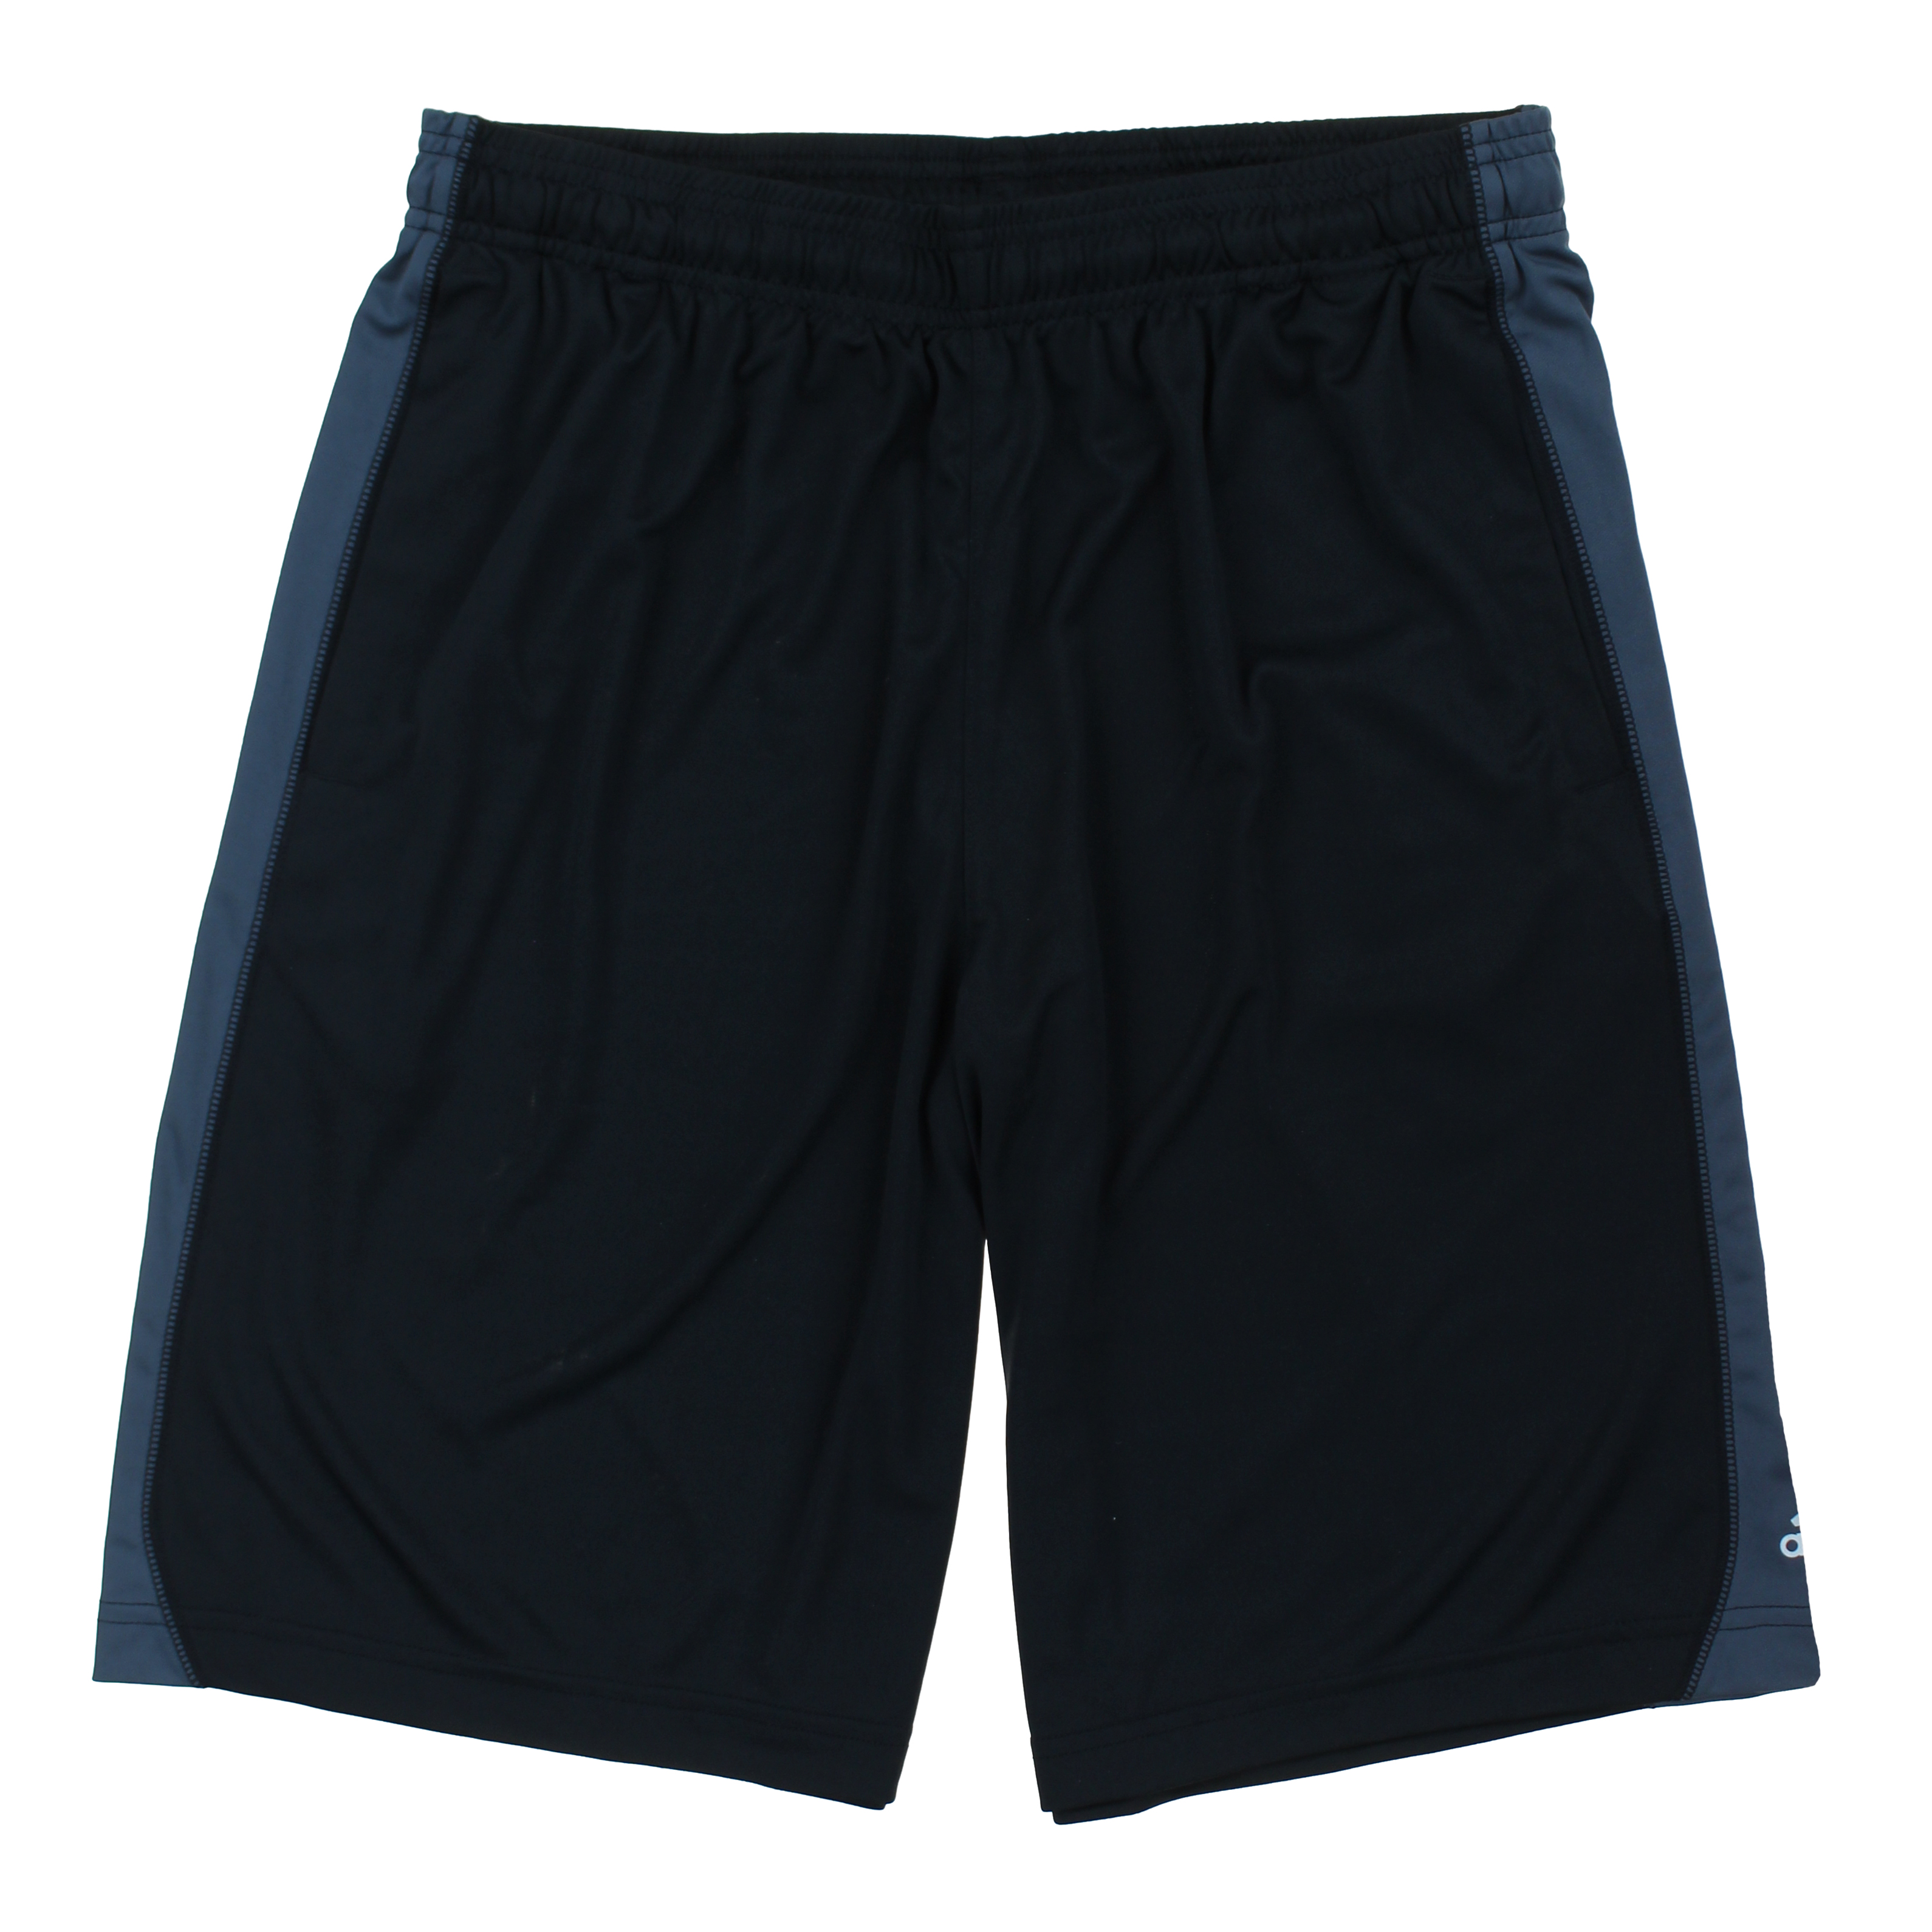 adidas mens climalite enforcer athletic shorts ebay. Black Bedroom Furniture Sets. Home Design Ideas